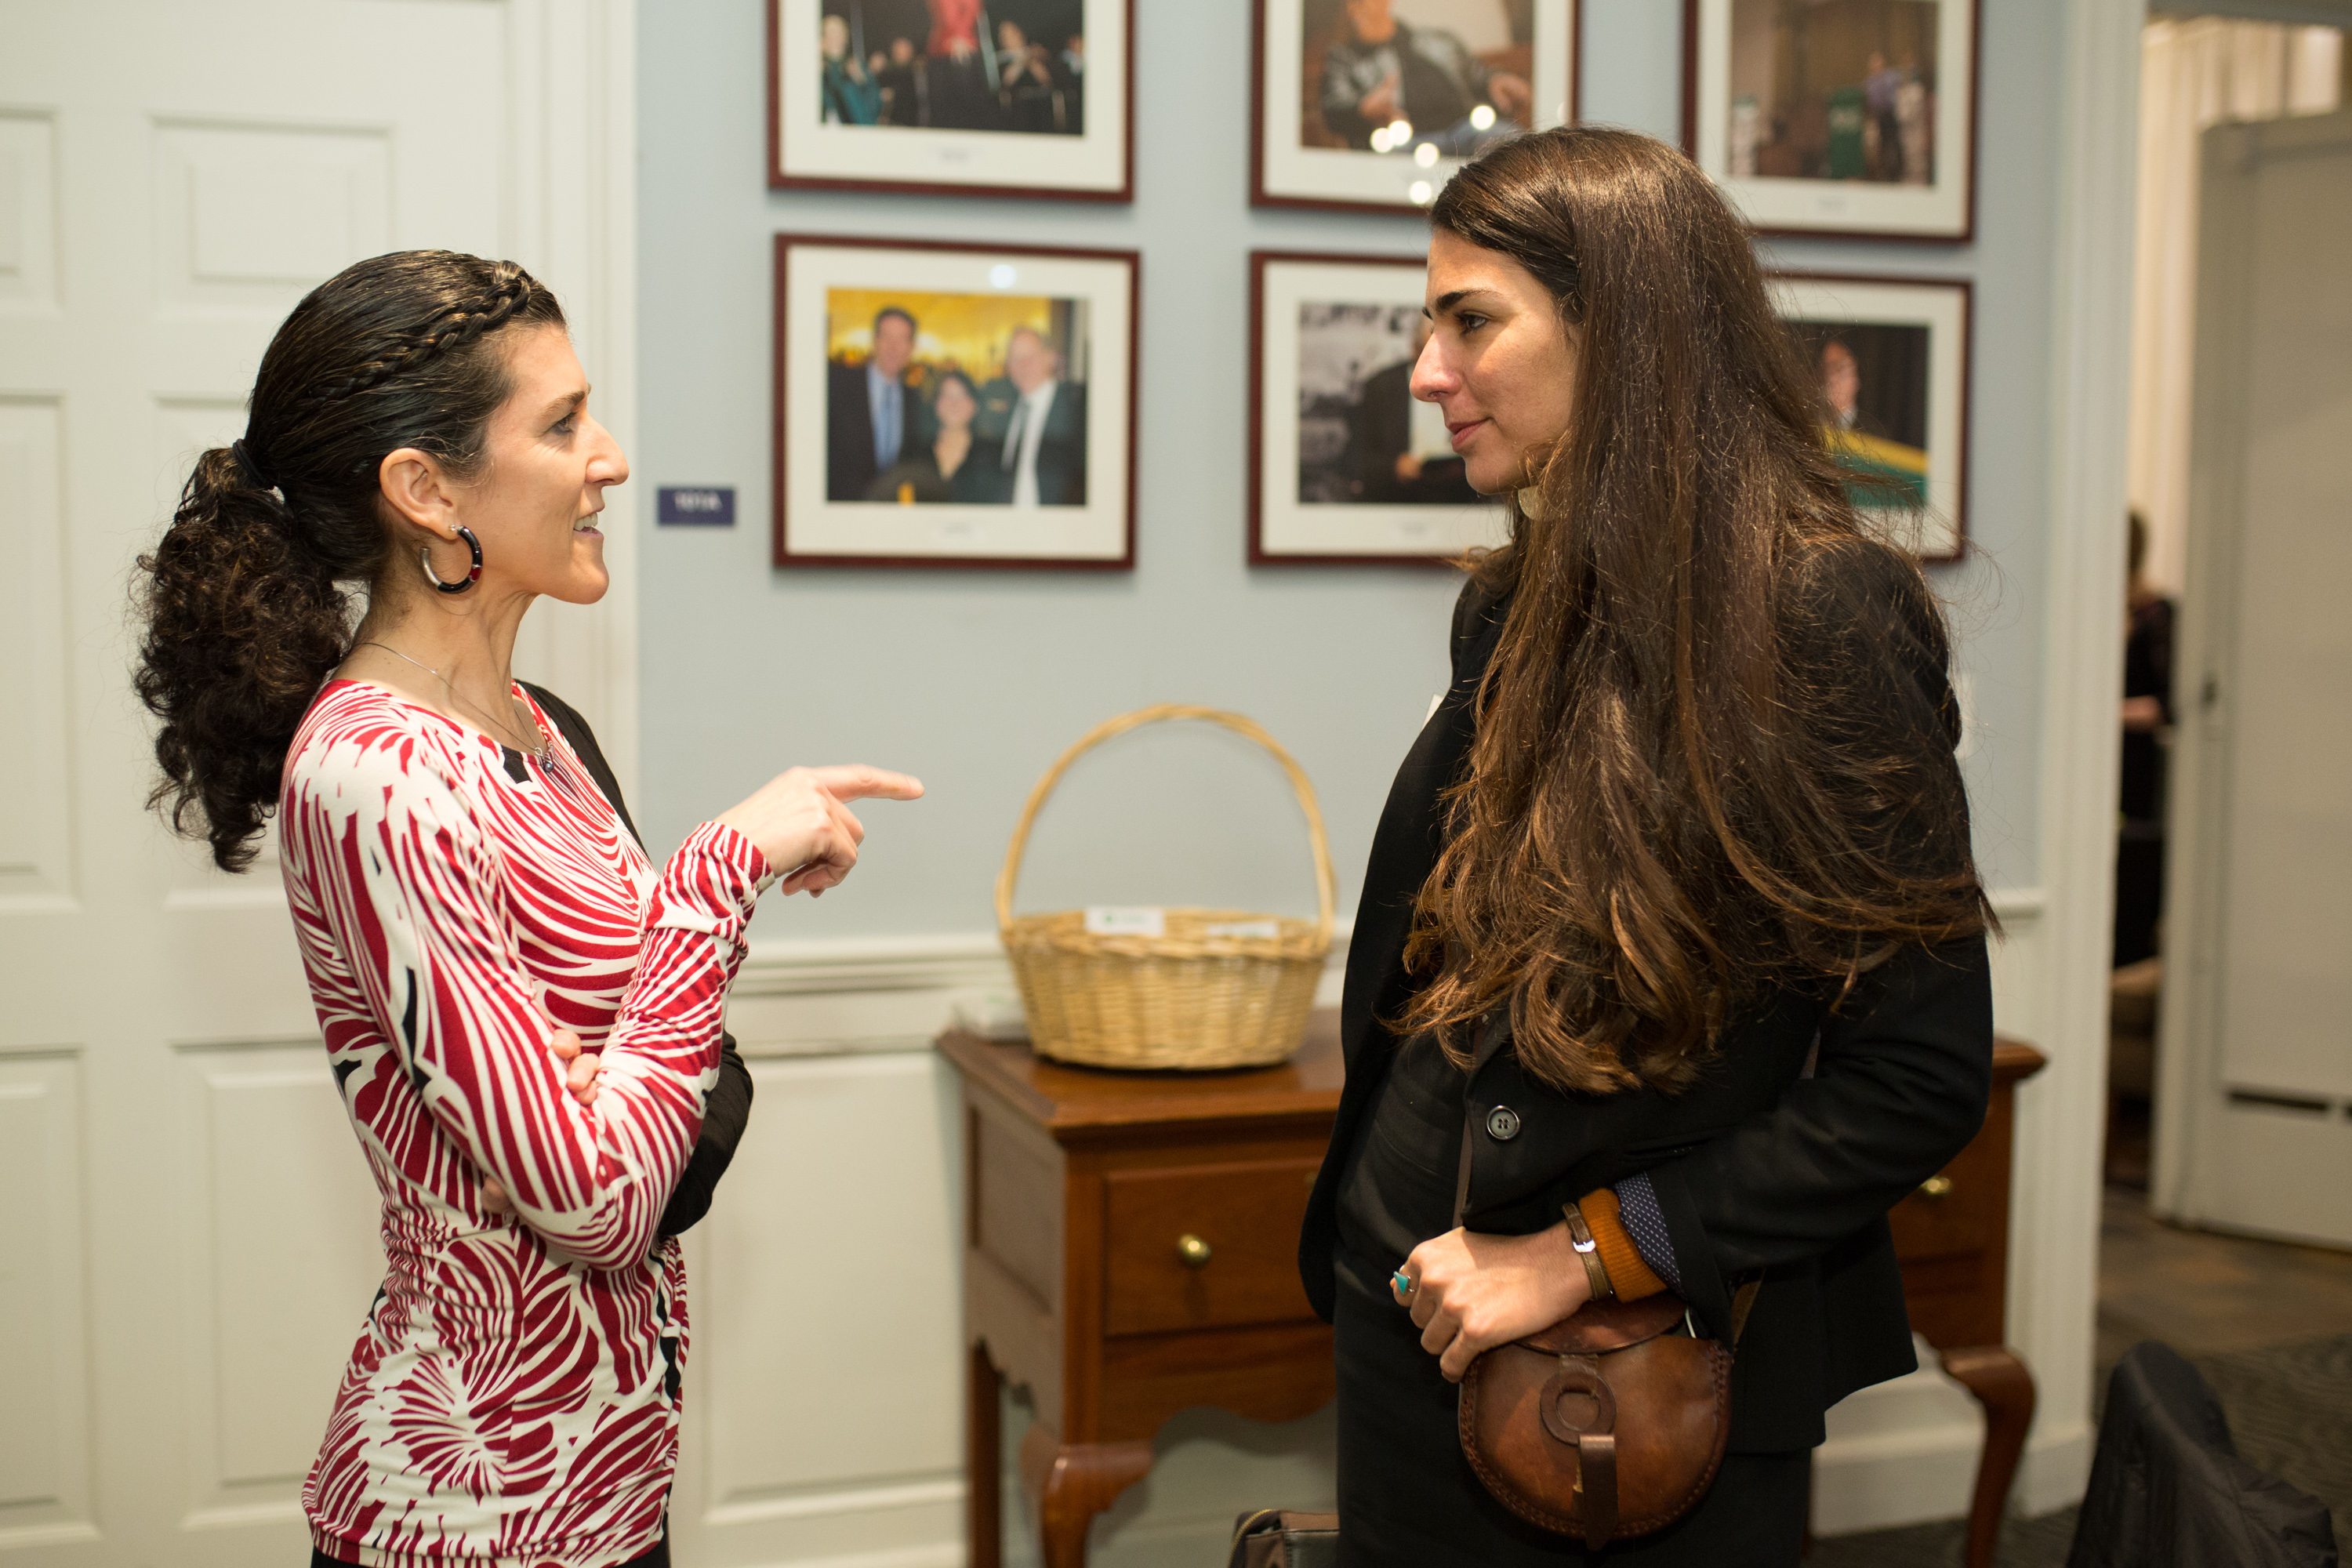 Lisa Fiore in a red and white dress stands and talks face-to-face with Saameh Solaimanim, who is dressed in black